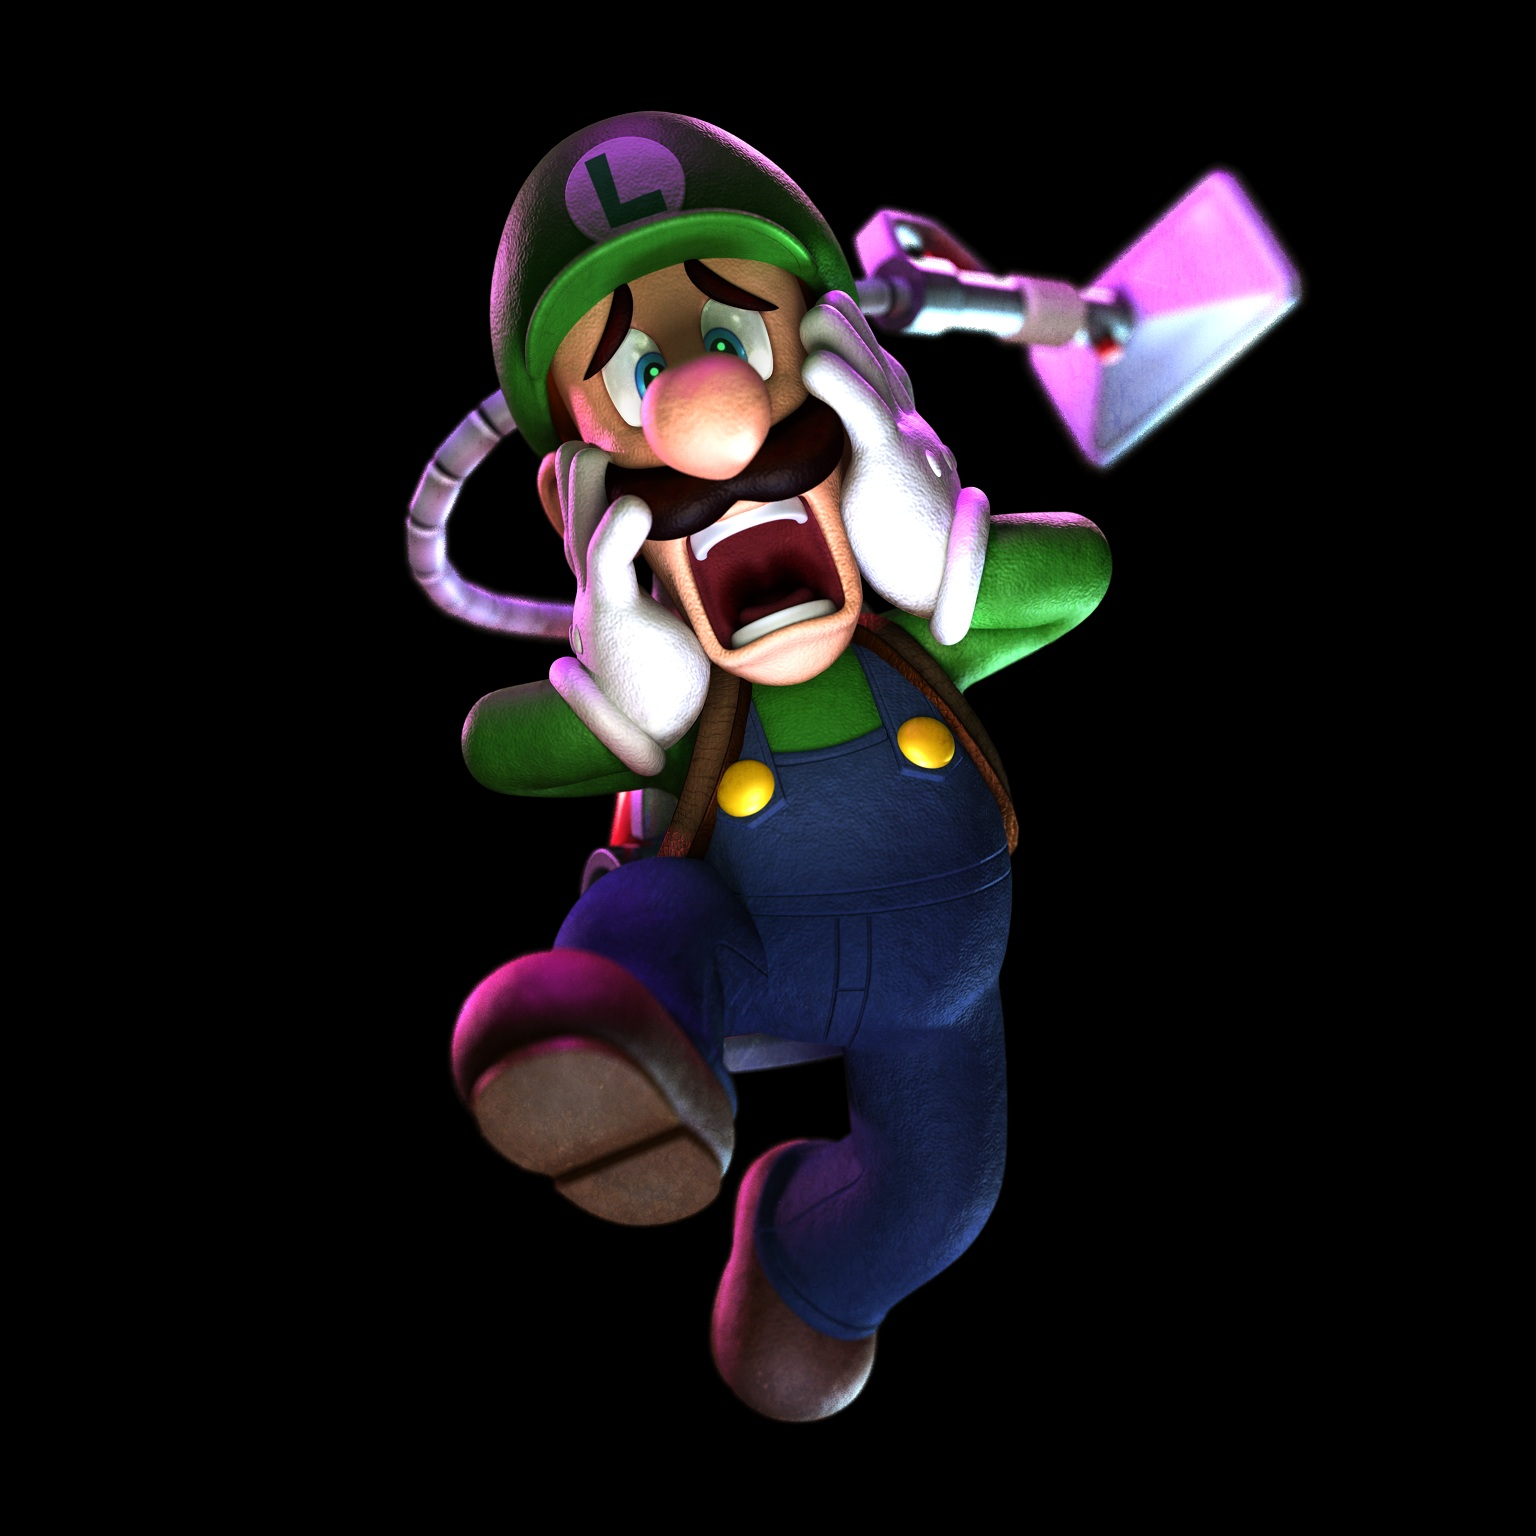 Luigi's Mansion Pics, Video Game Collection